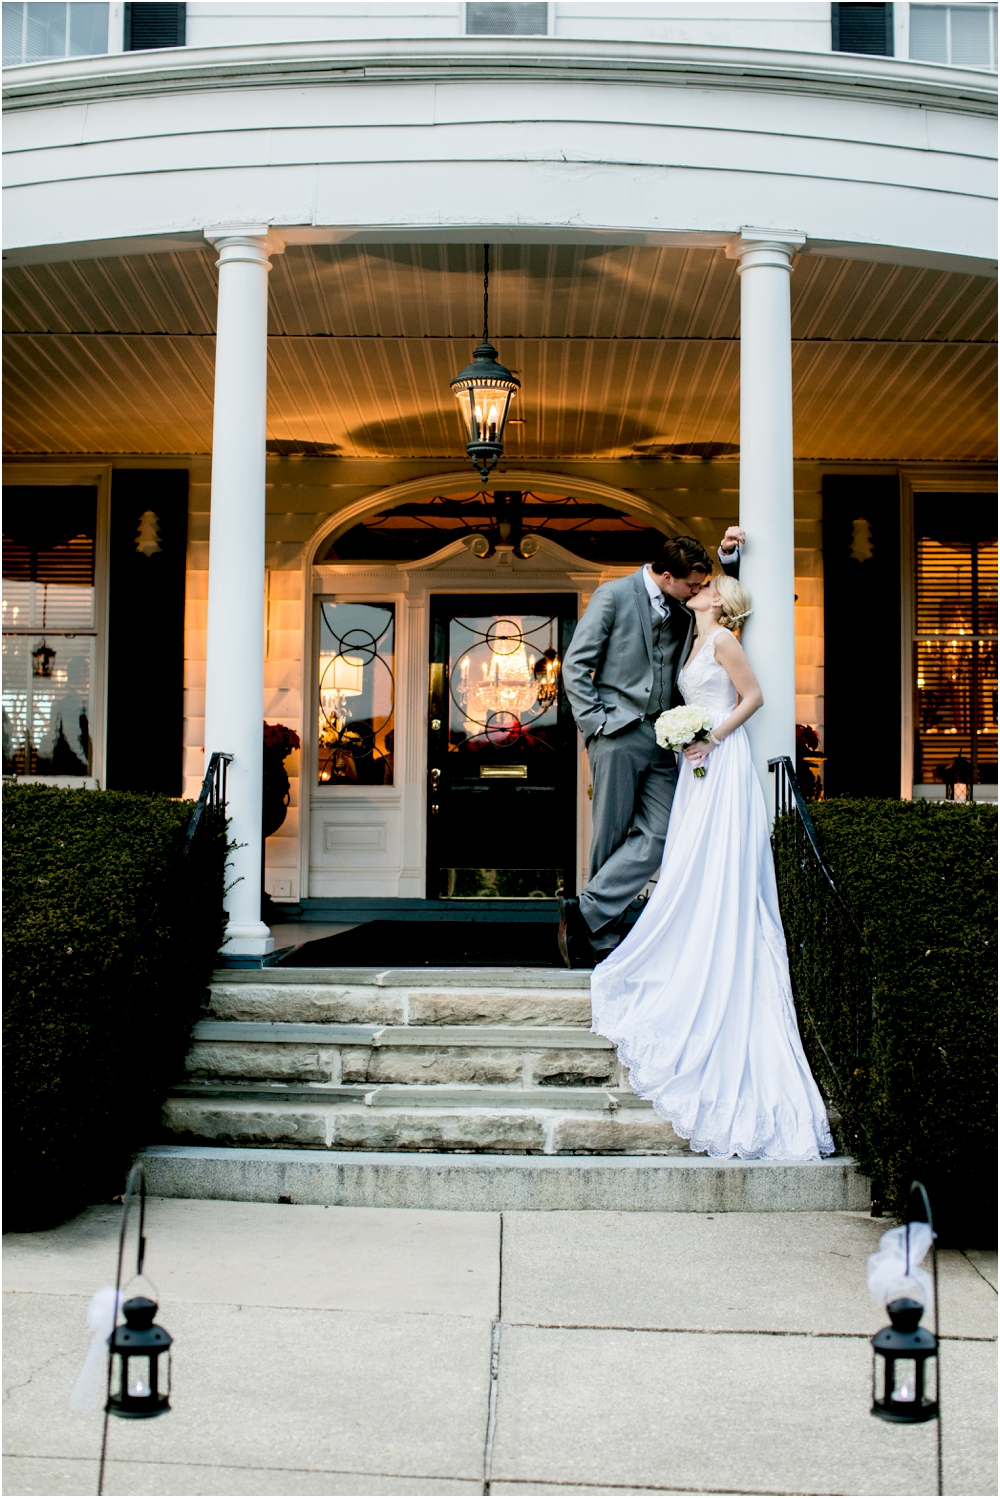 katelynn chris soper wedding valley country club town living radiant photogrpahy photos_0099.jpg